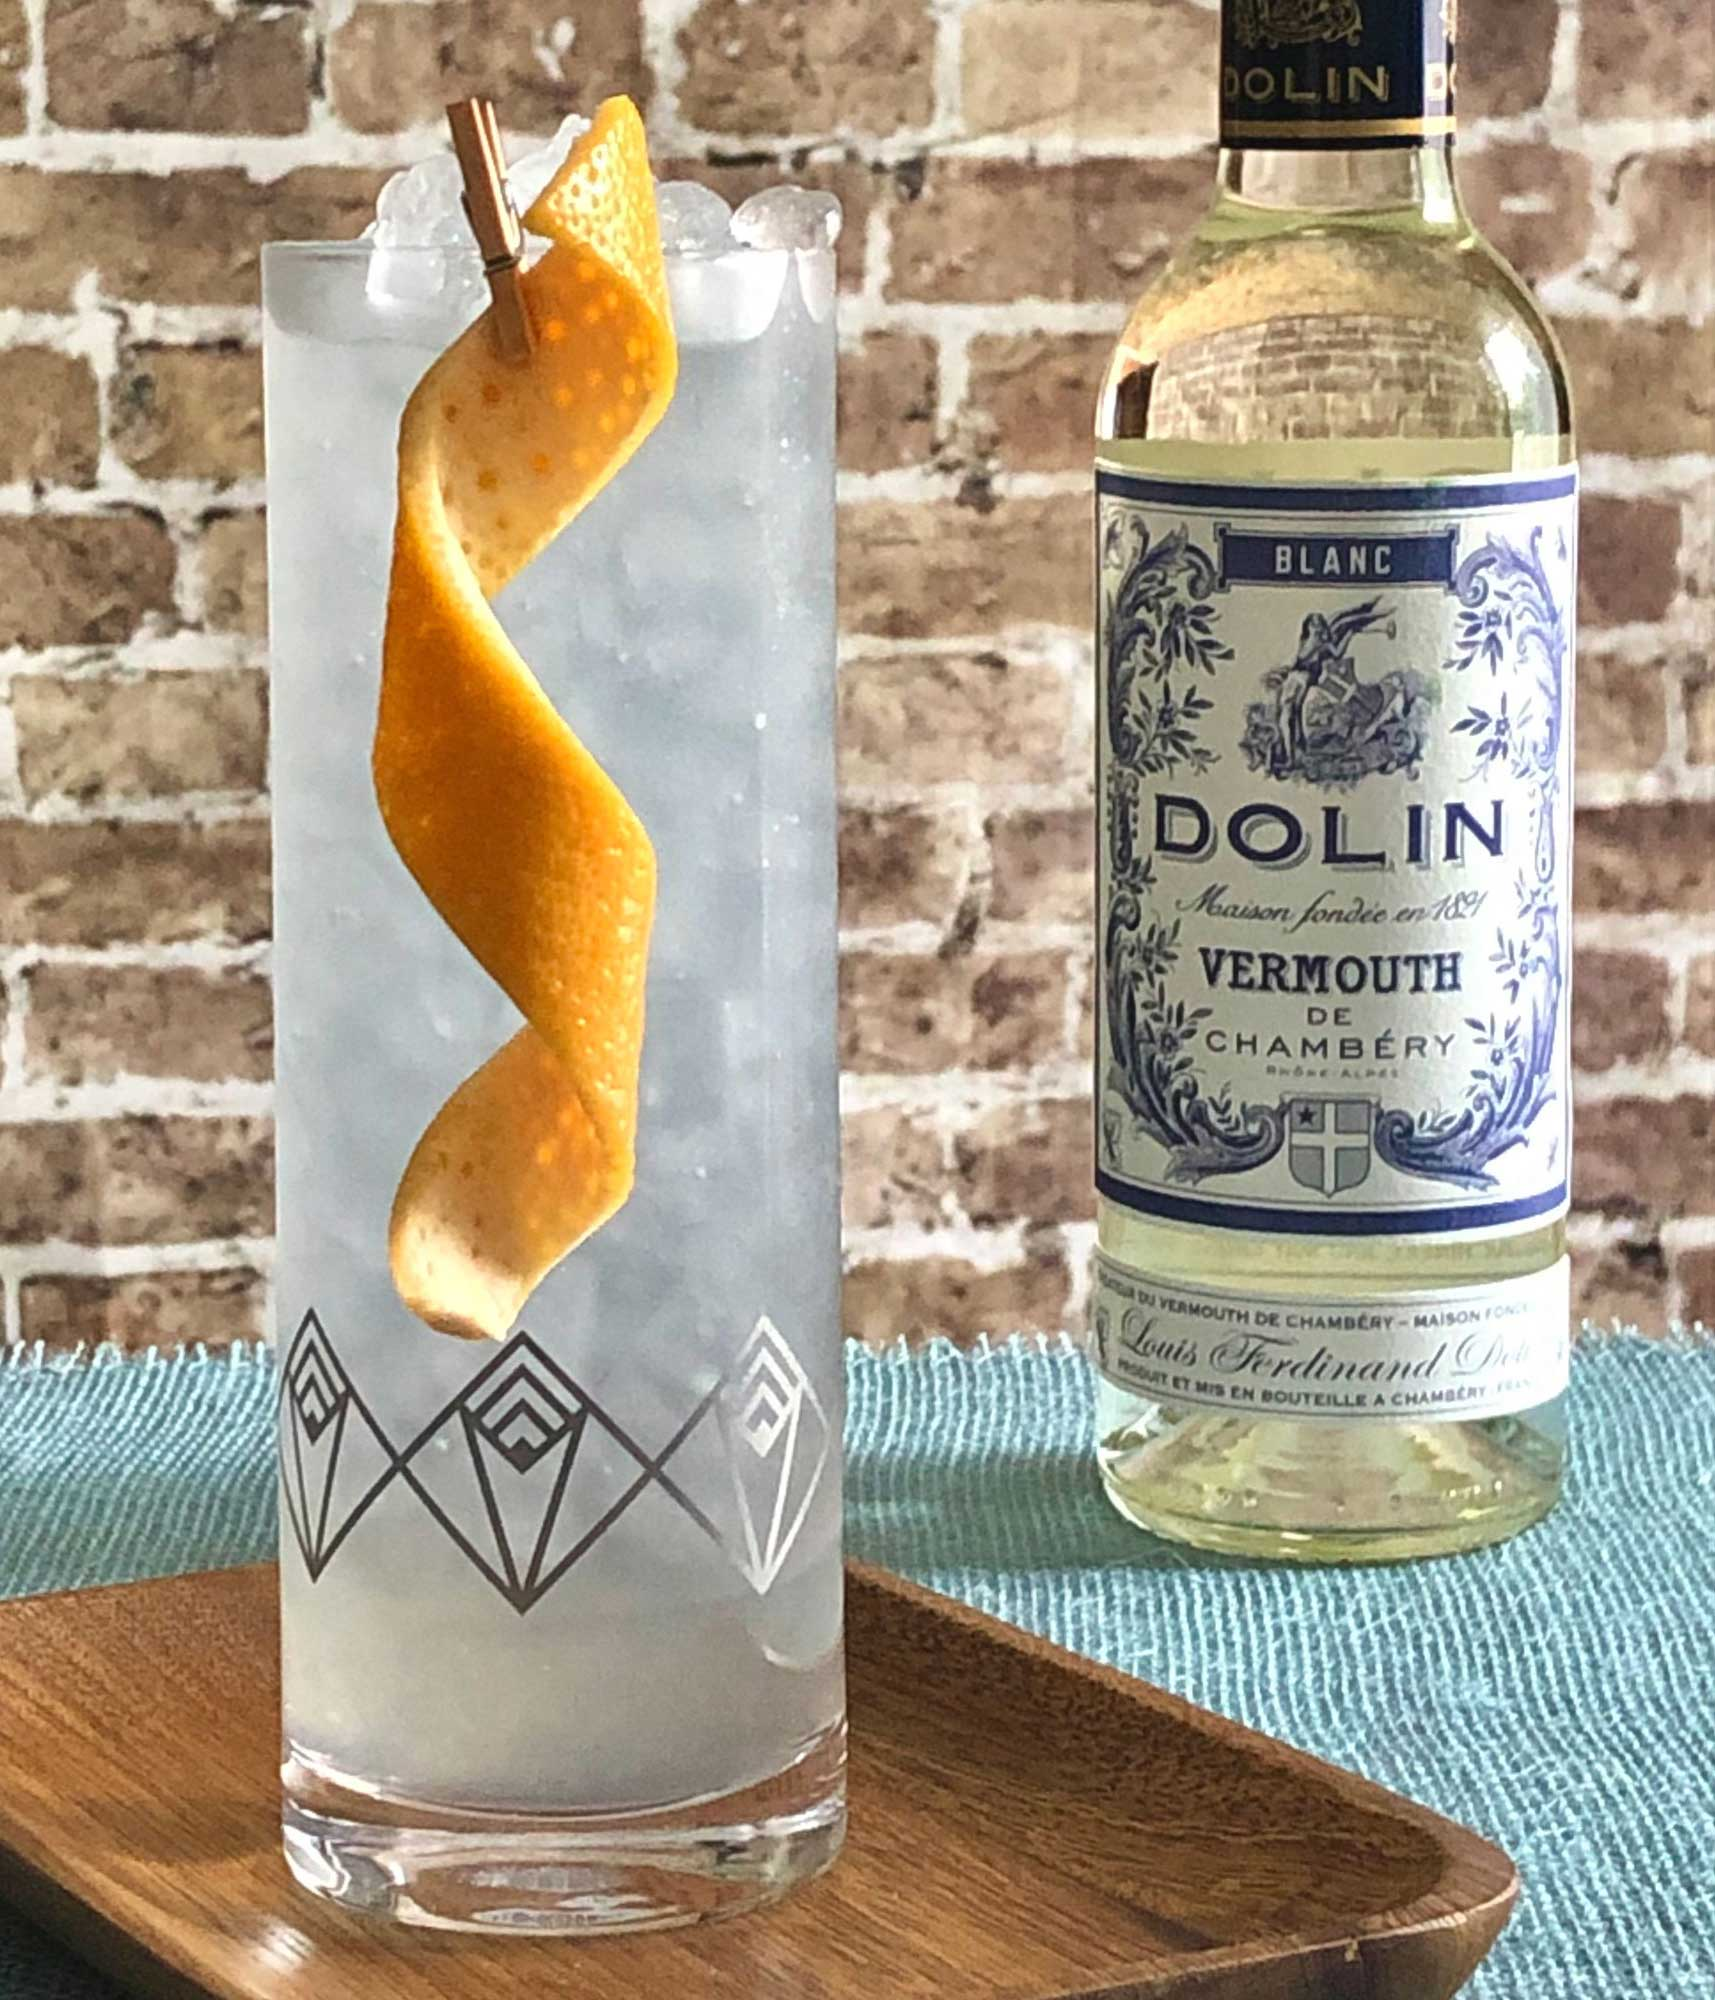 An example of the Canne Collins, the mixed drink (collins) featuring soda water, rhum agricole blanc, Dolin Blanc Vermouth de Chambéry, lemon juice, simple syrup, and Rothman & Winter Crème de Violette; photo by Lee Edwards